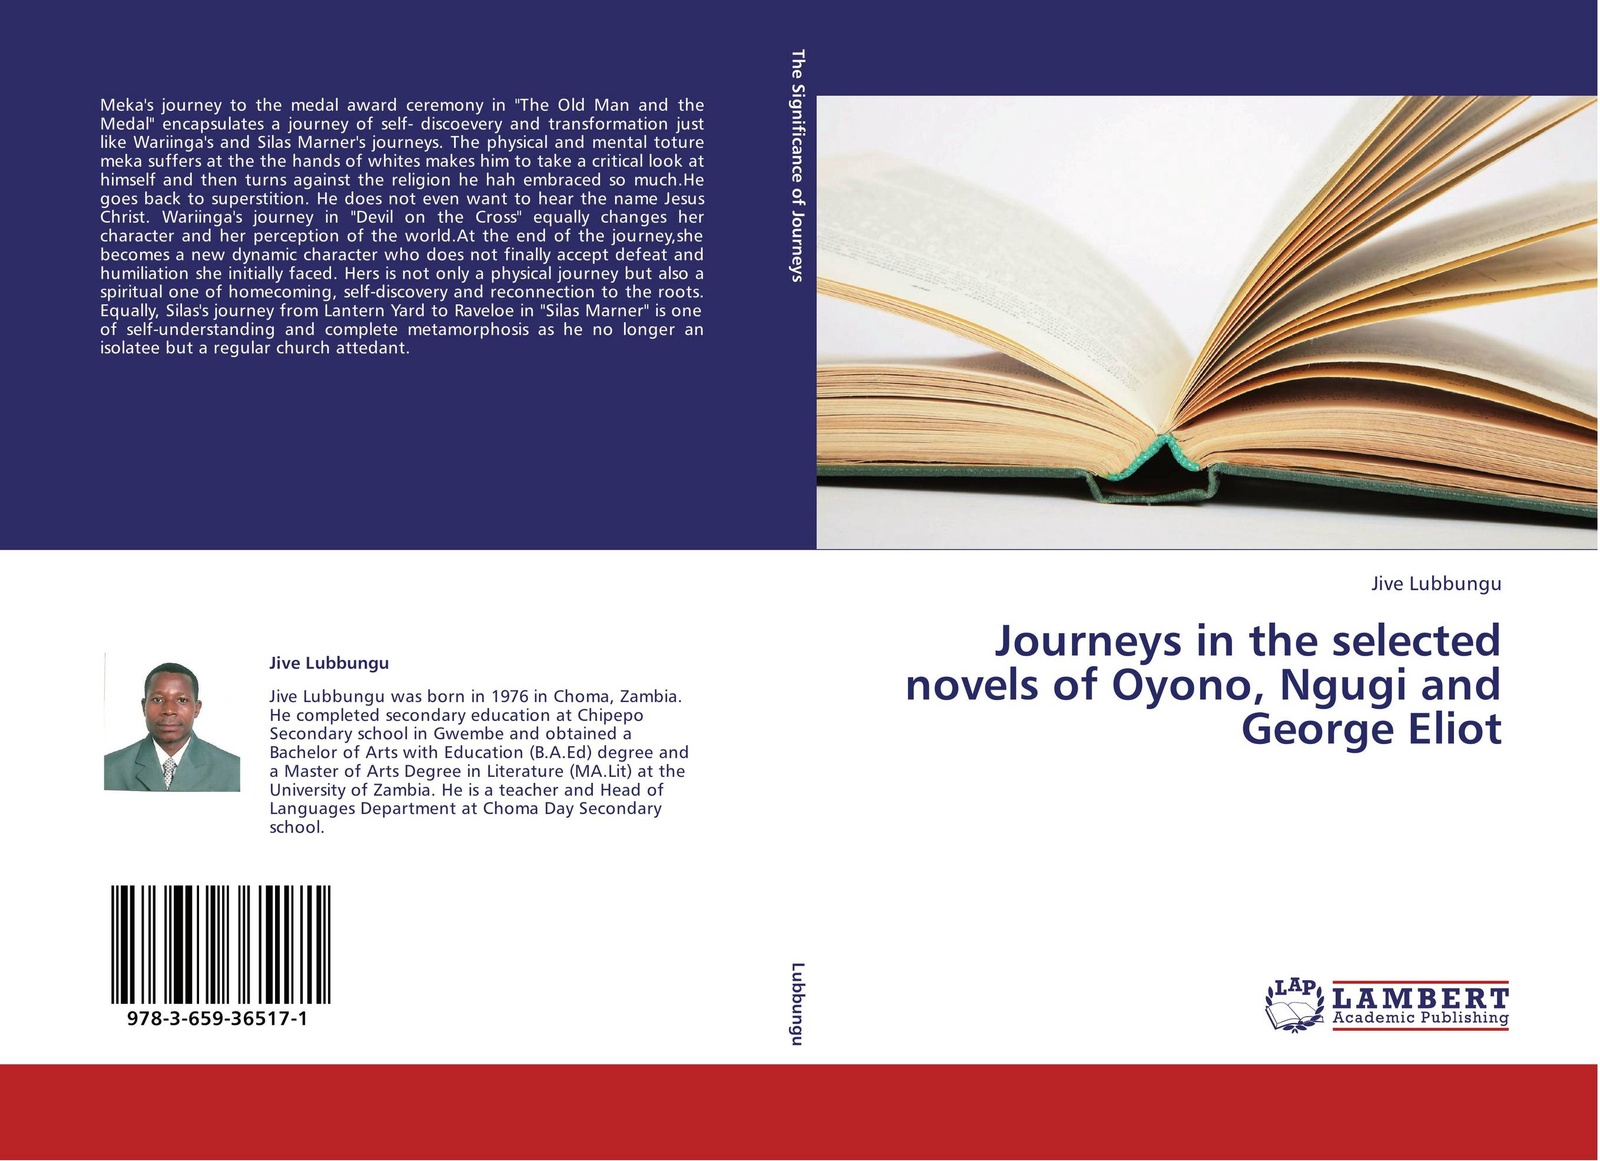 Jive Lubbungu Journeys in the selected novels of Oyono, Ngugi and George Eliot journeys in the selected novels of oyono ngugi and george eliot